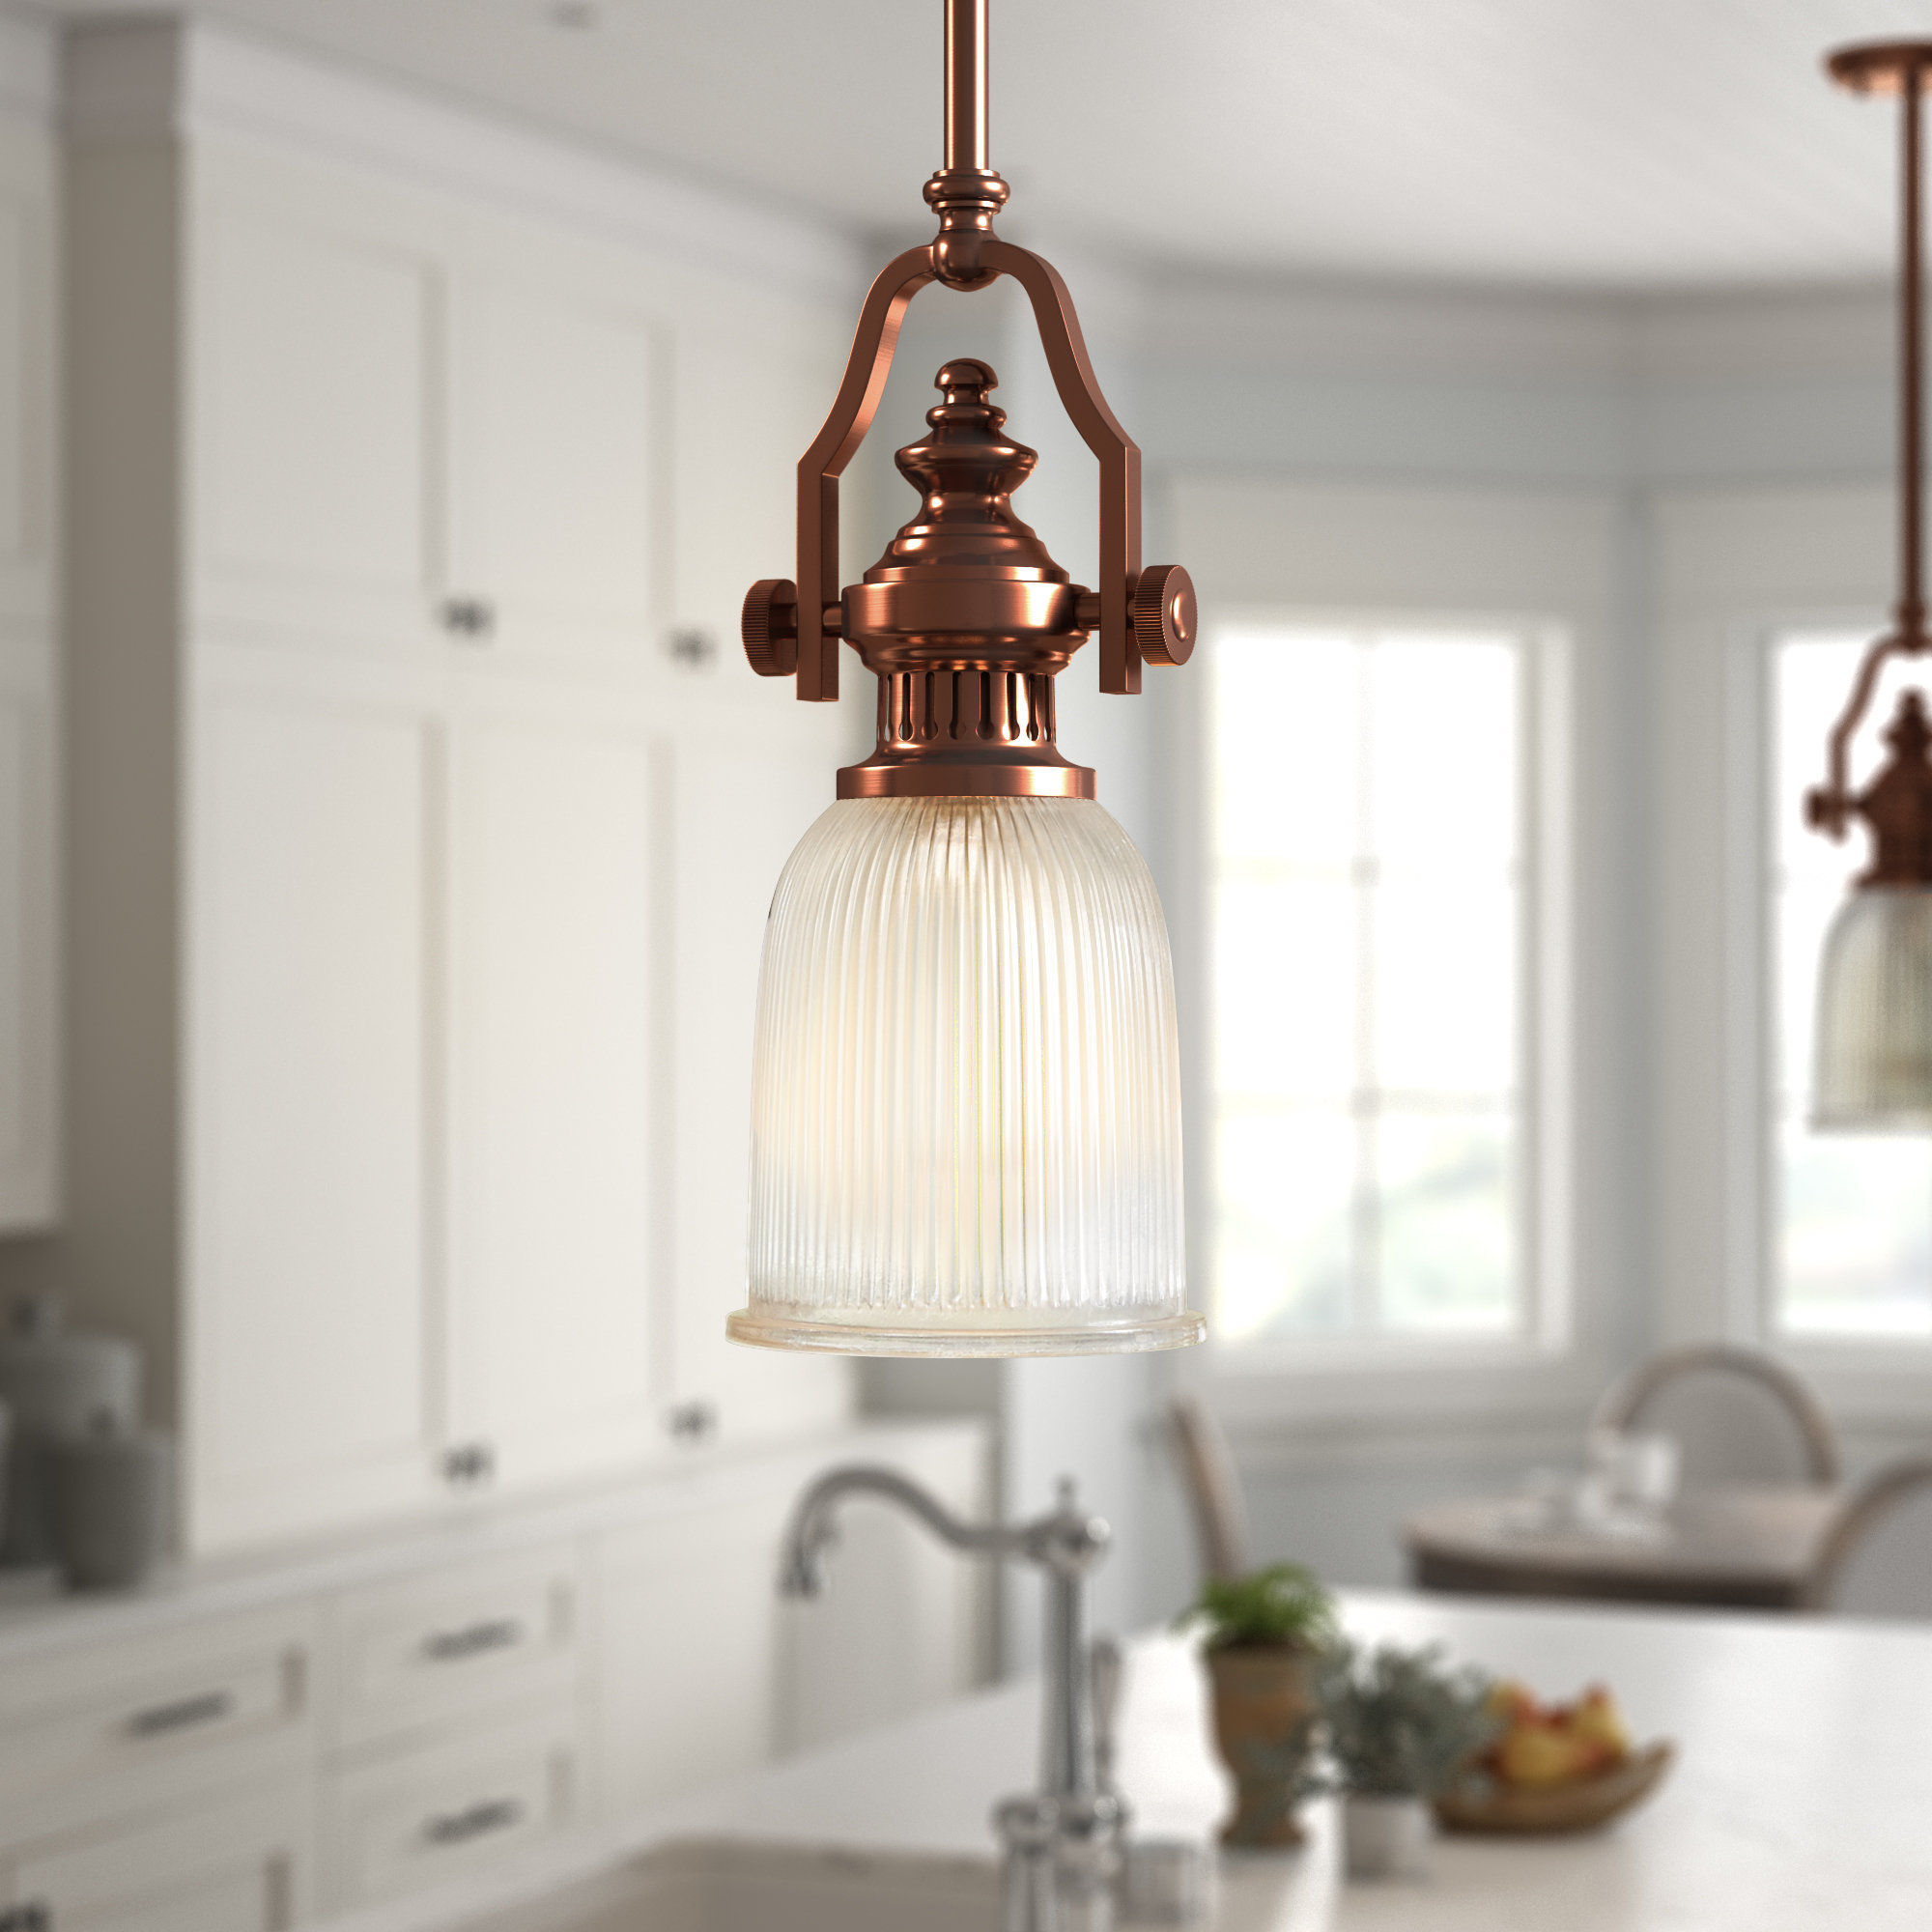 Recent Birch Lane Erico 1 Light Single Bell Pendant & Reviews Pertaining To Goldie 1 Light Single Bell Pendants (View 10 of 20)